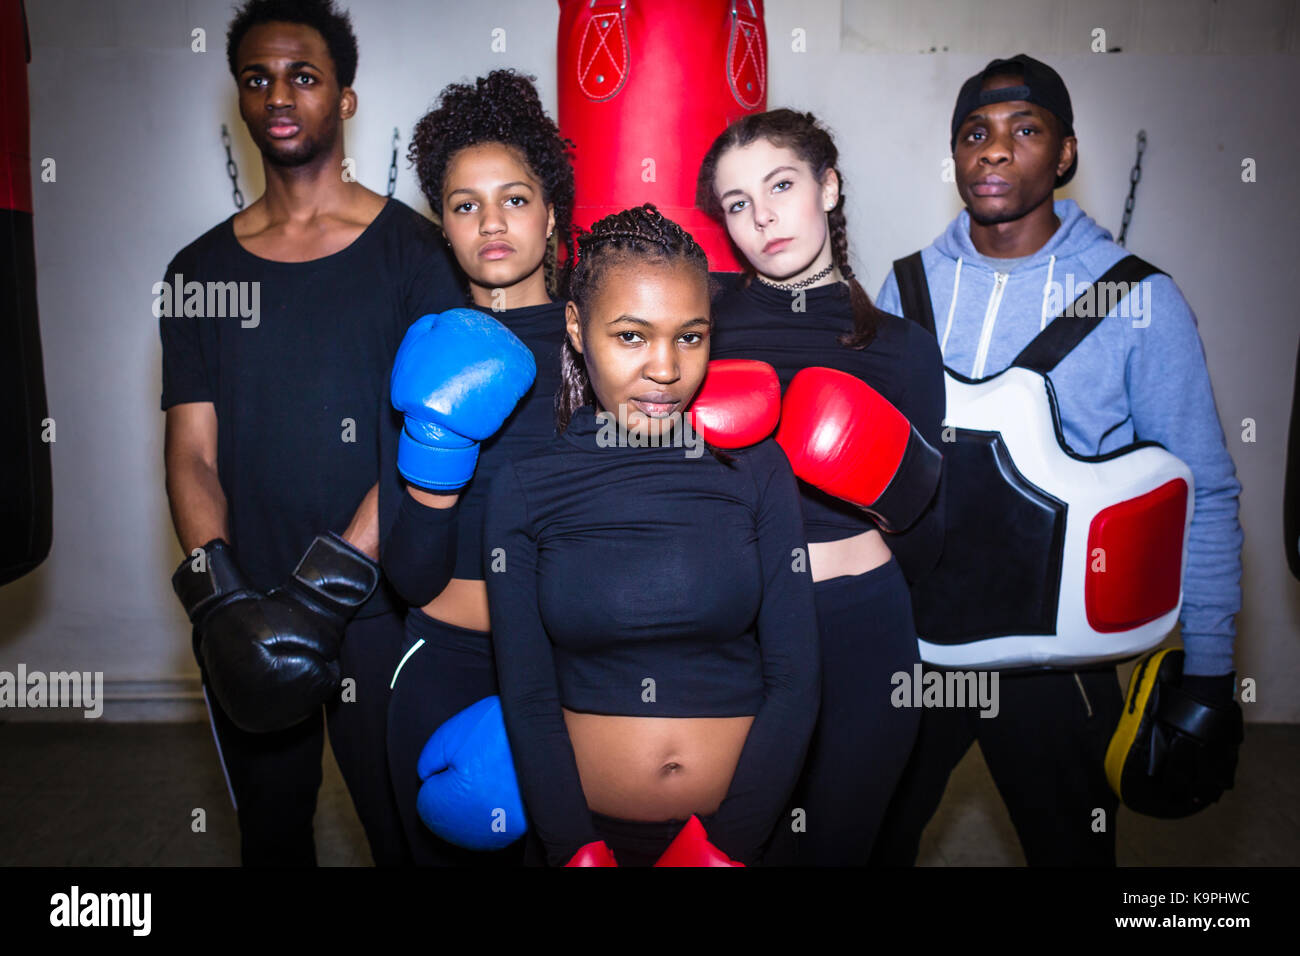 Portrait of four young determined boxers and their experienced b - Stock Image